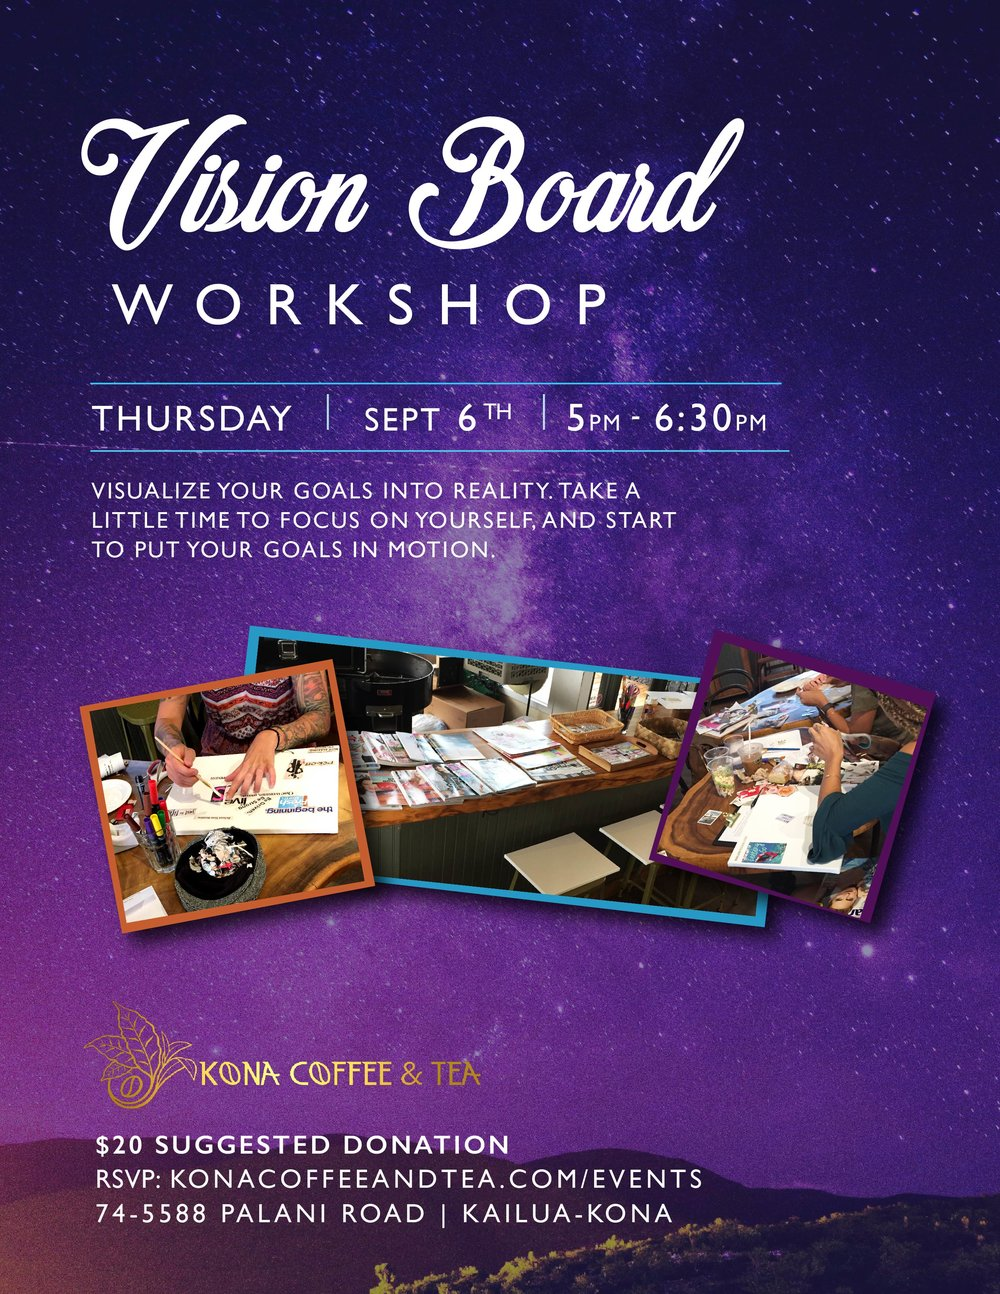 Vision Board Workshop_9.6.18-01.jpg